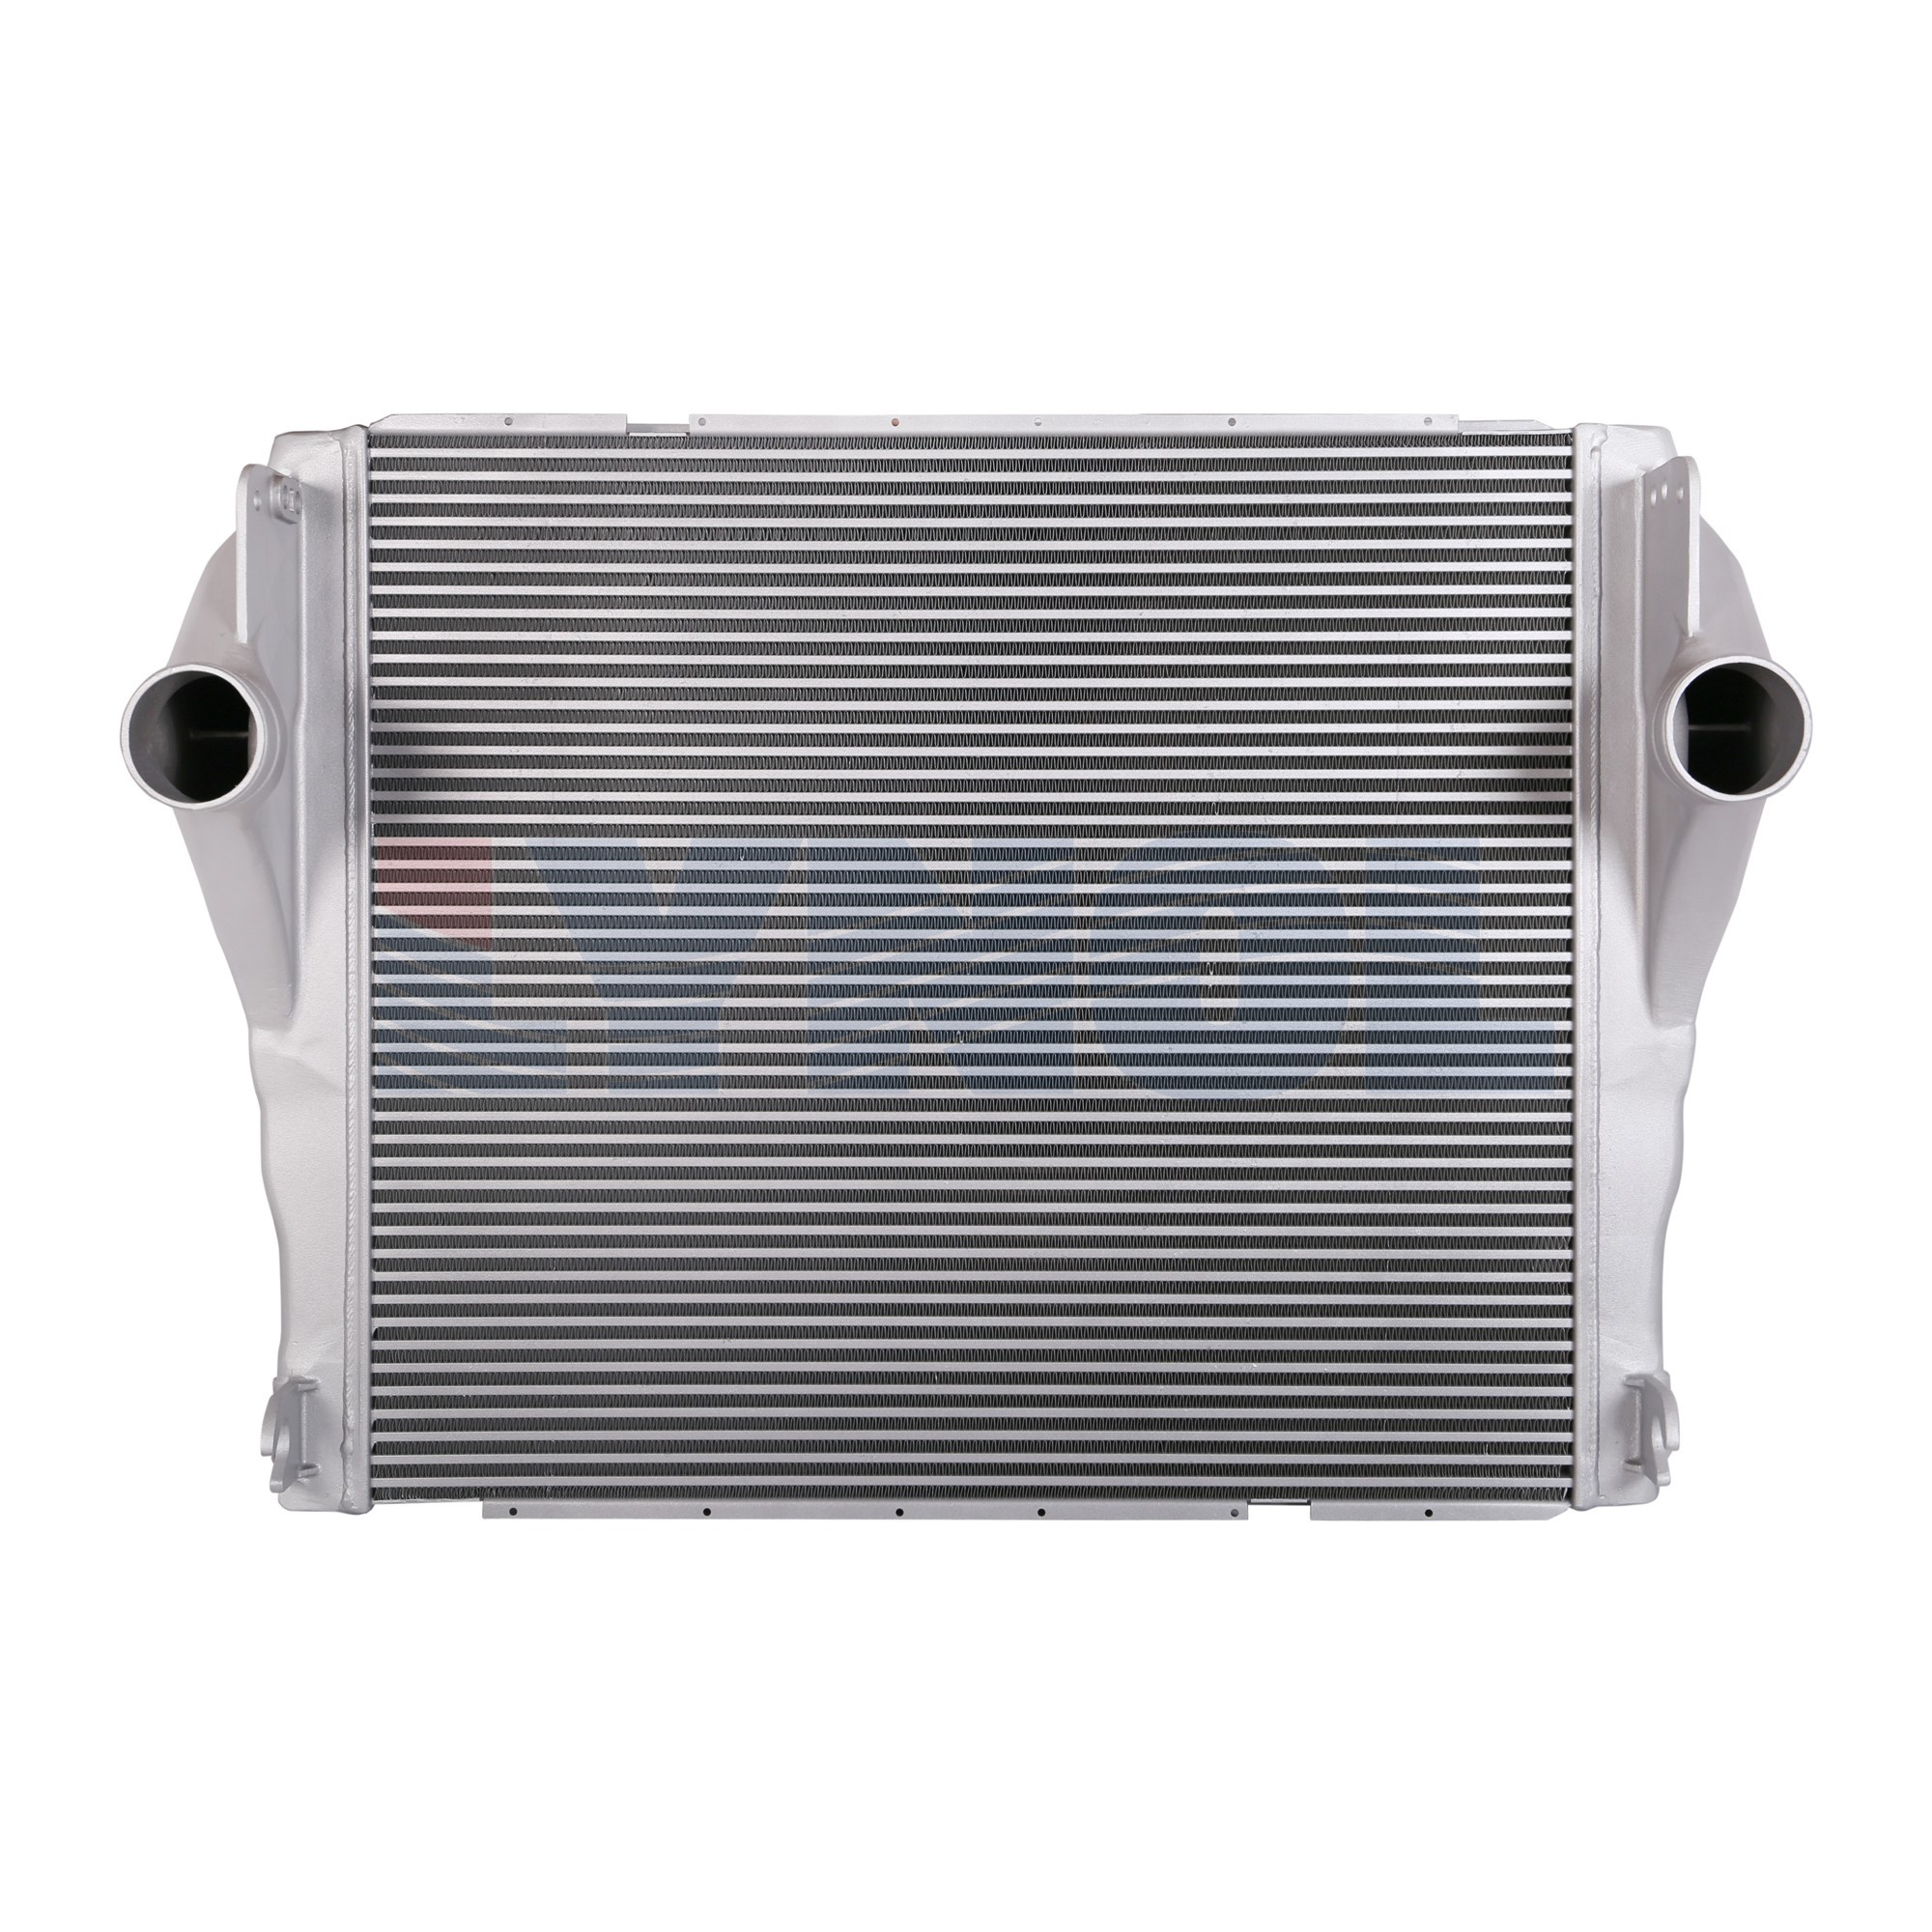 2401-003 - Peterbilt / Kenworth Charge Air Cooler